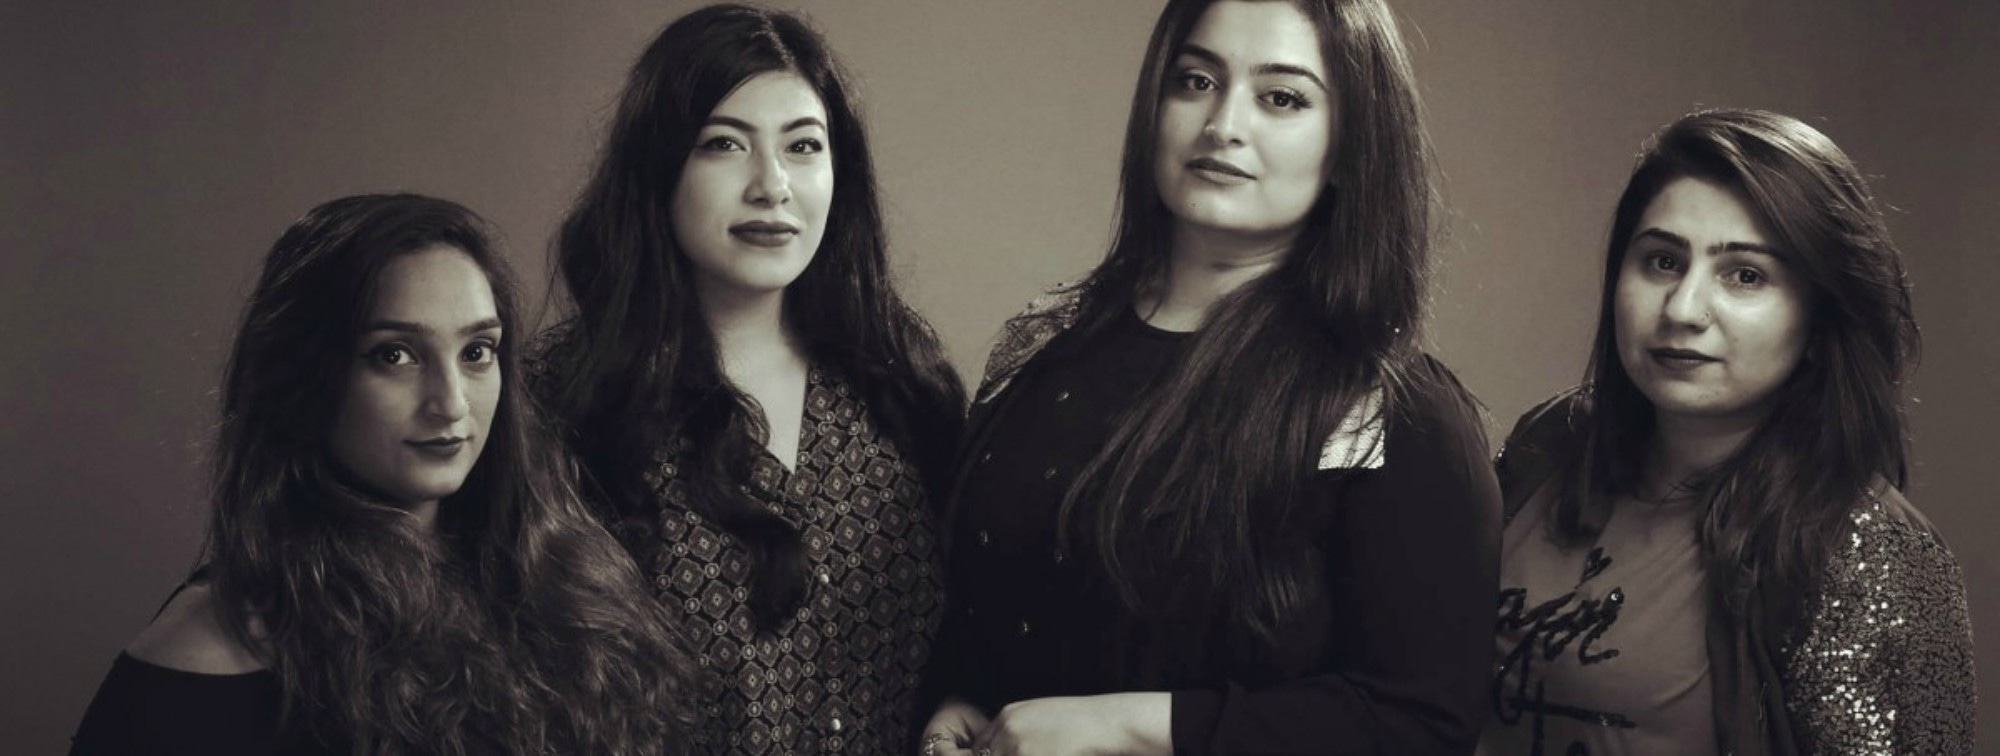 327593c19e5 The plus-size Pakistani woman exists, and now she's speaking up ...